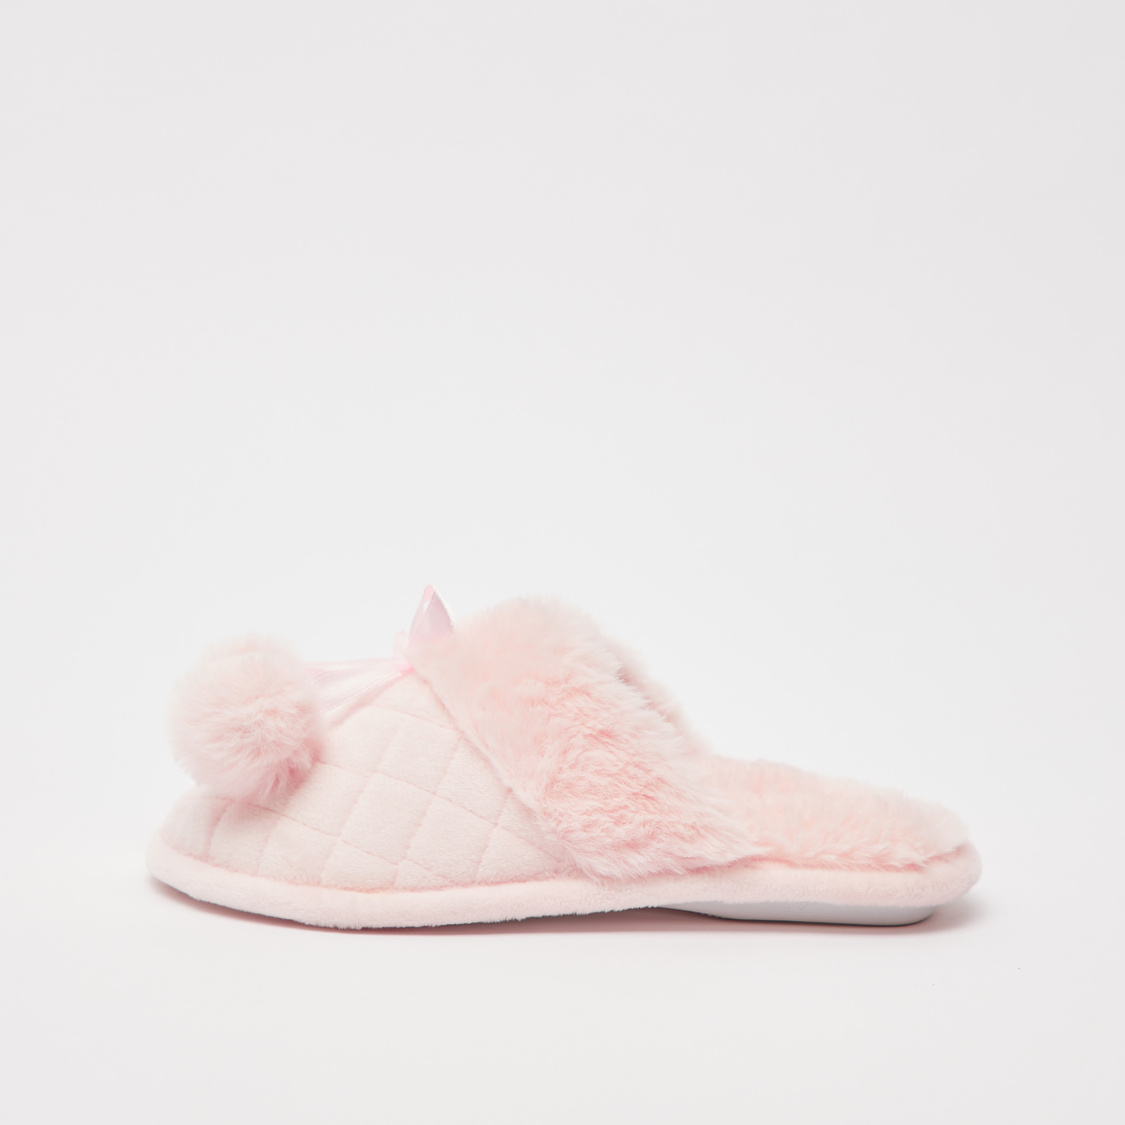 Textured Plush Bedroom Slippers with Pom-Poms